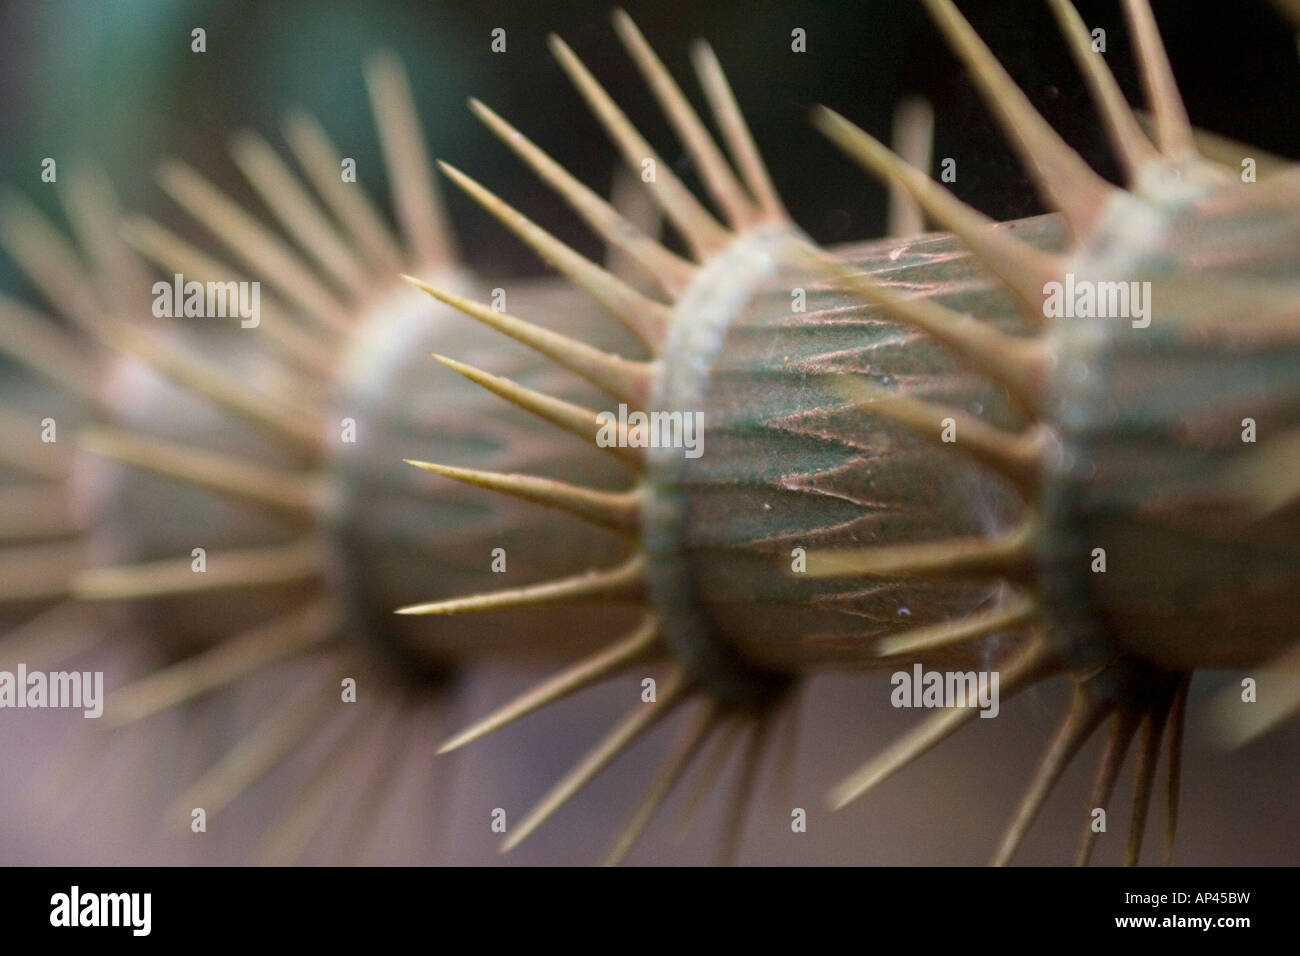 The thorny stem of a plant in the Taman Negara National Park, Malaysia. - Stock Image